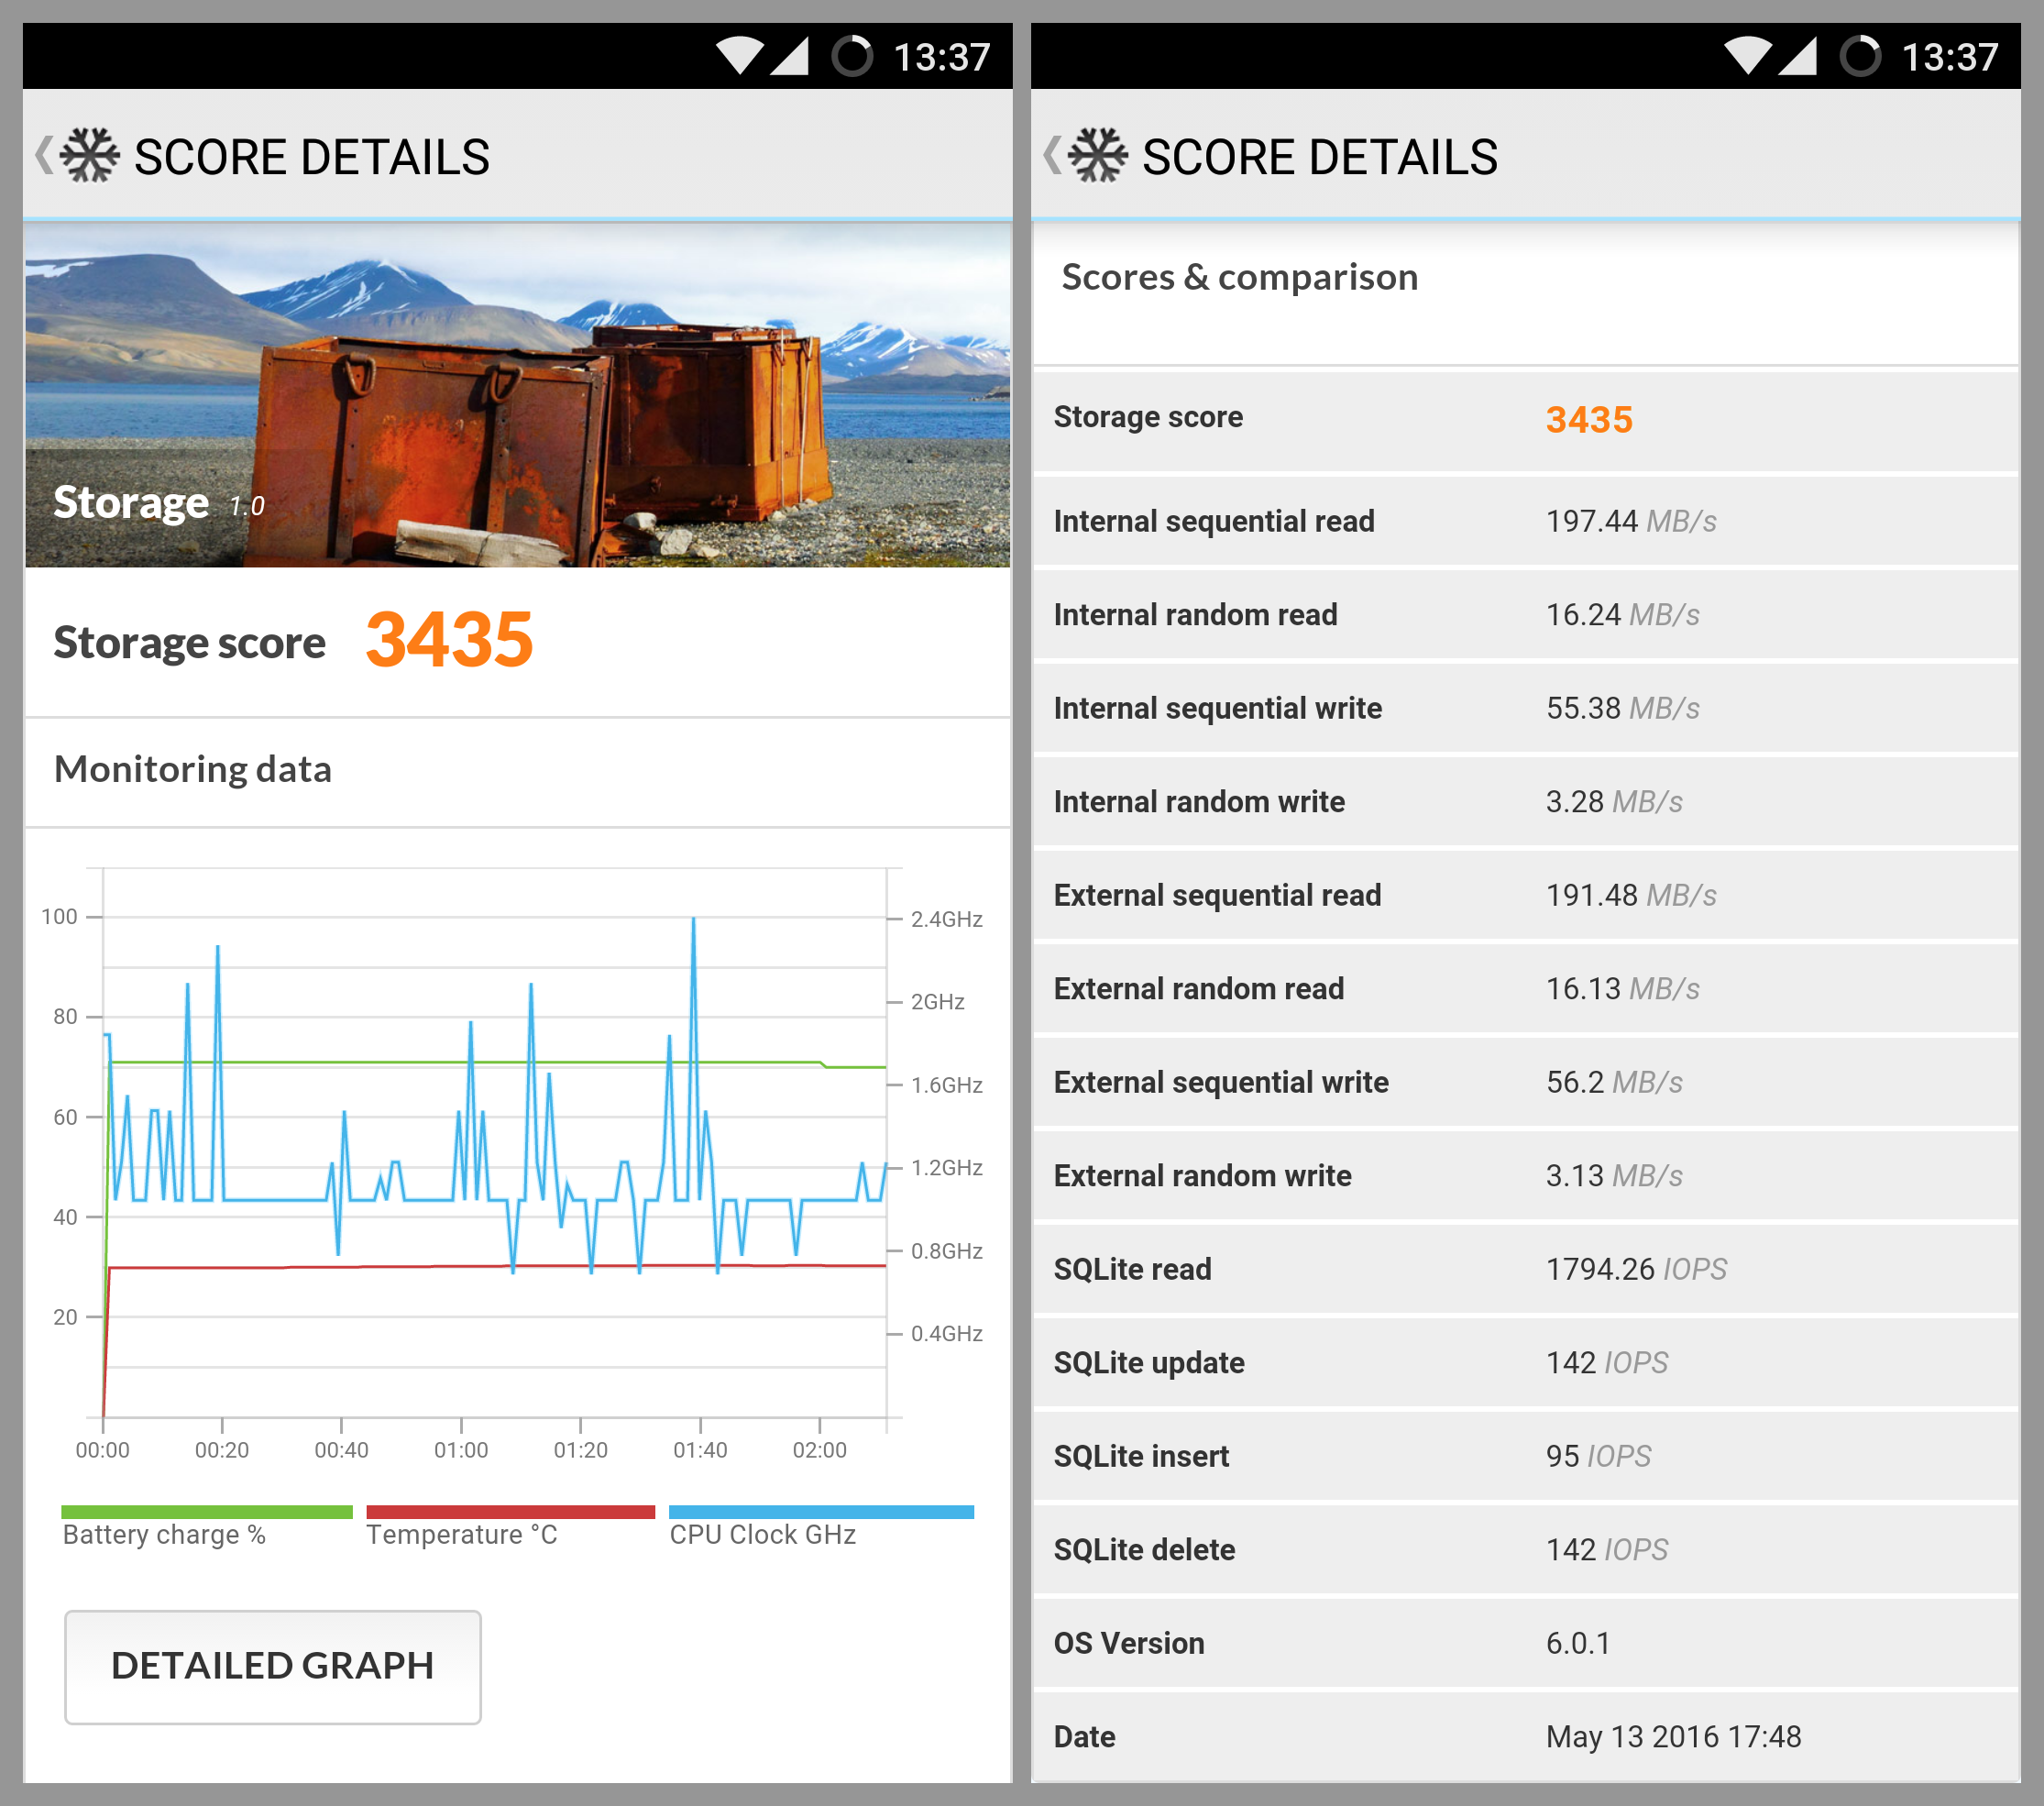 PCMark for Android Storage benchmark results